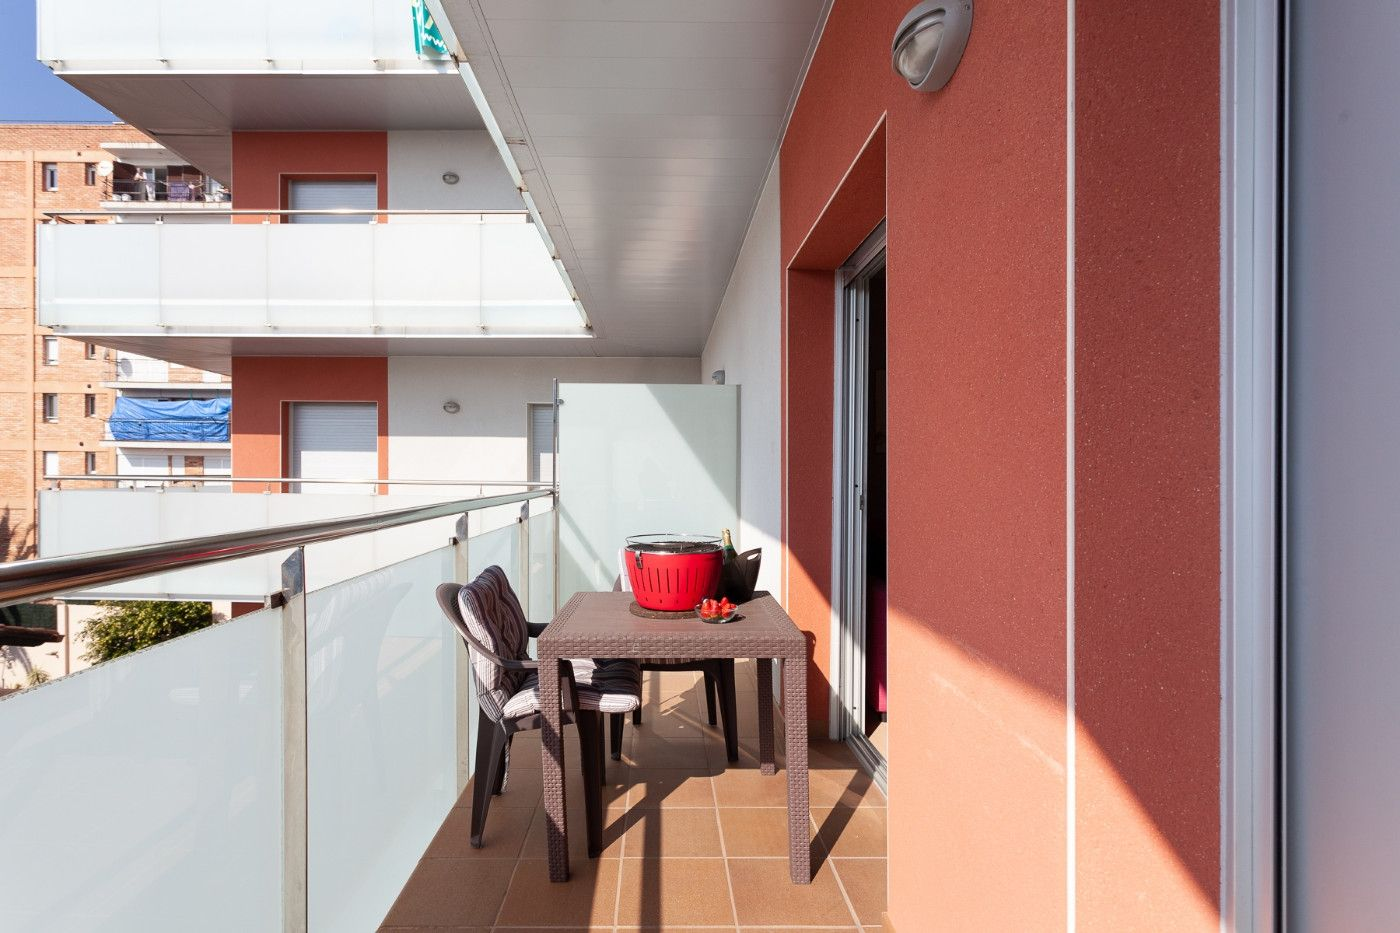 Location saisonnière Appartement à Carrer sant jordi, 7. Sea& beach lloret  apartments